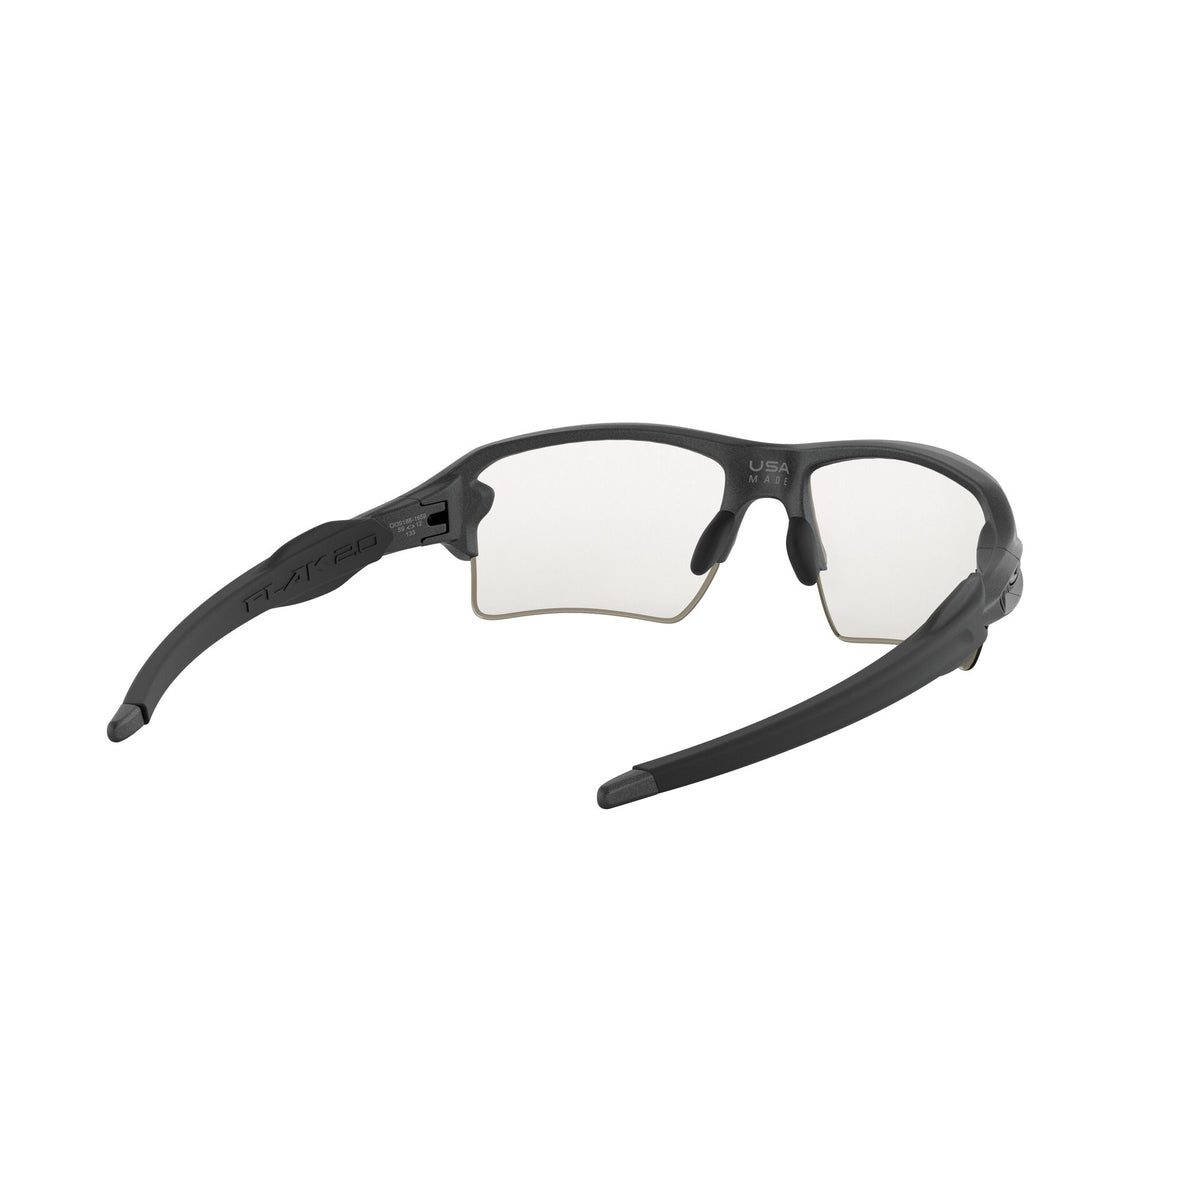 Oakley Flak 2.0 XL Sunglasses Steel Clear Black Iridium Photochromic Lens